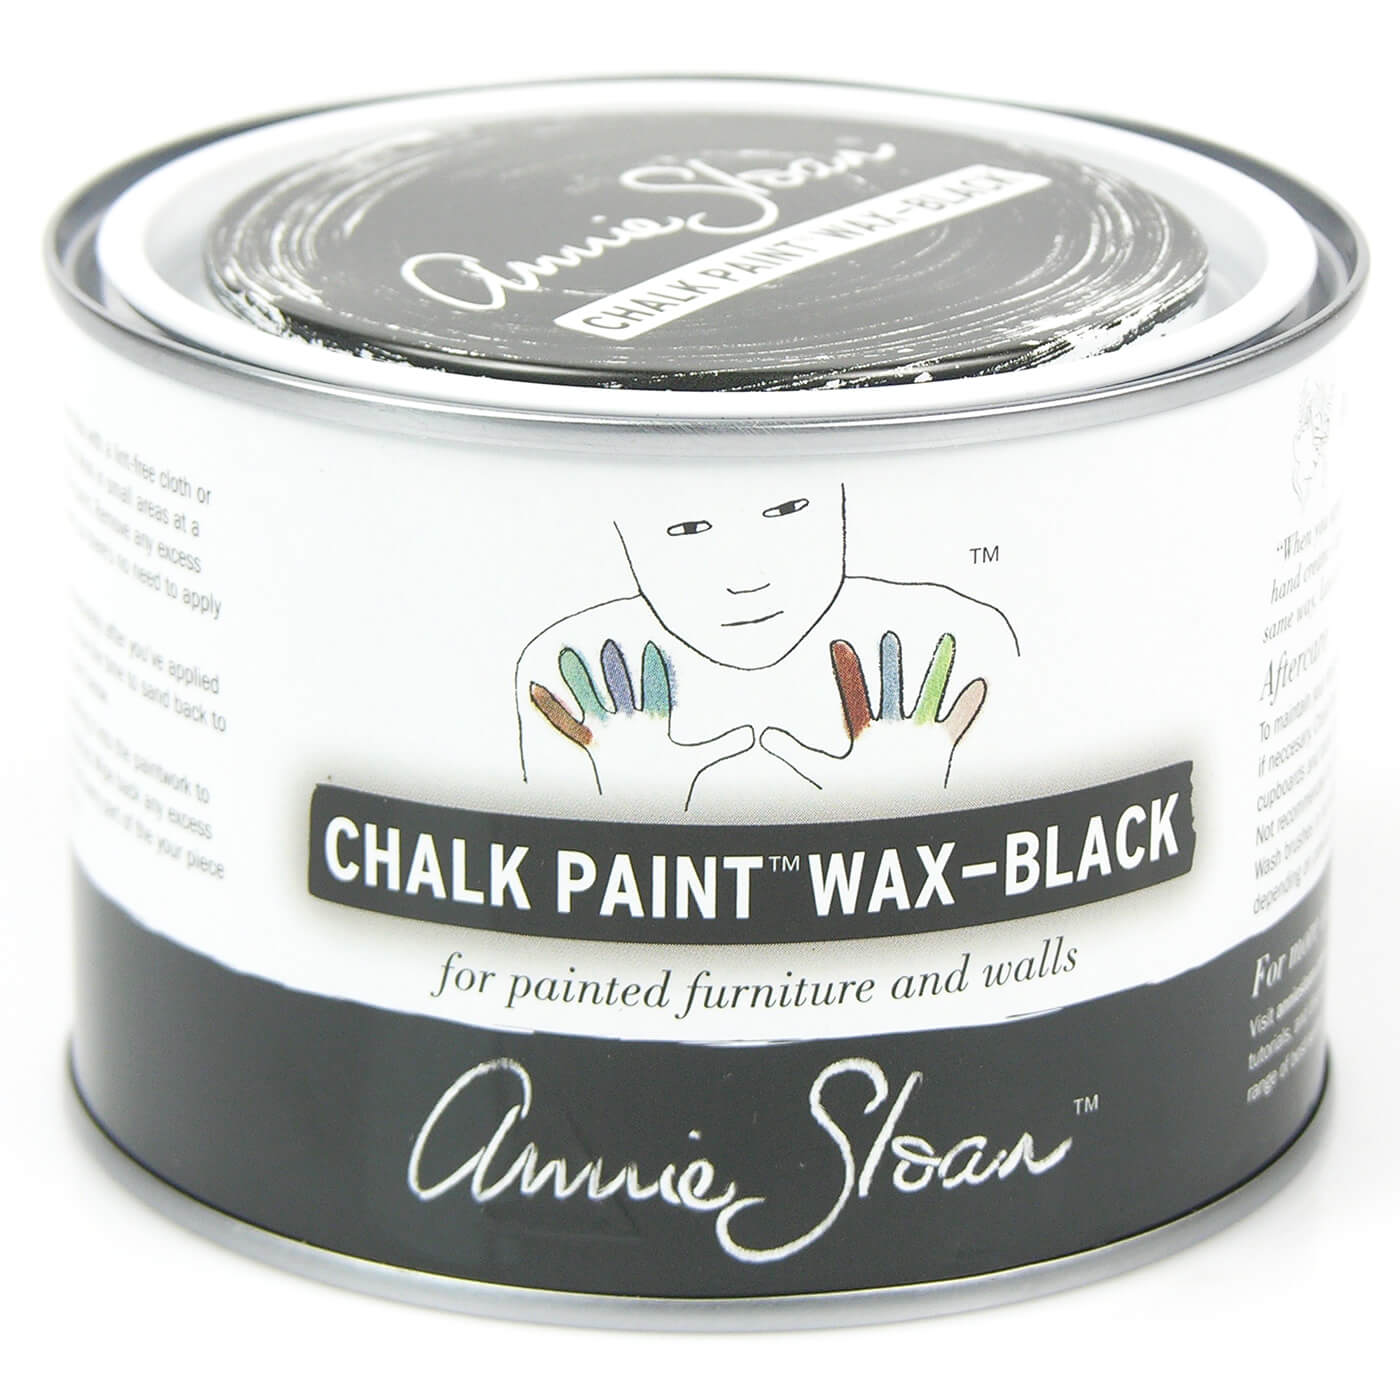 soft wachs schwarz 500ml wachse lack annie sloan chalk paint selbermachen dekowebshop. Black Bedroom Furniture Sets. Home Design Ideas